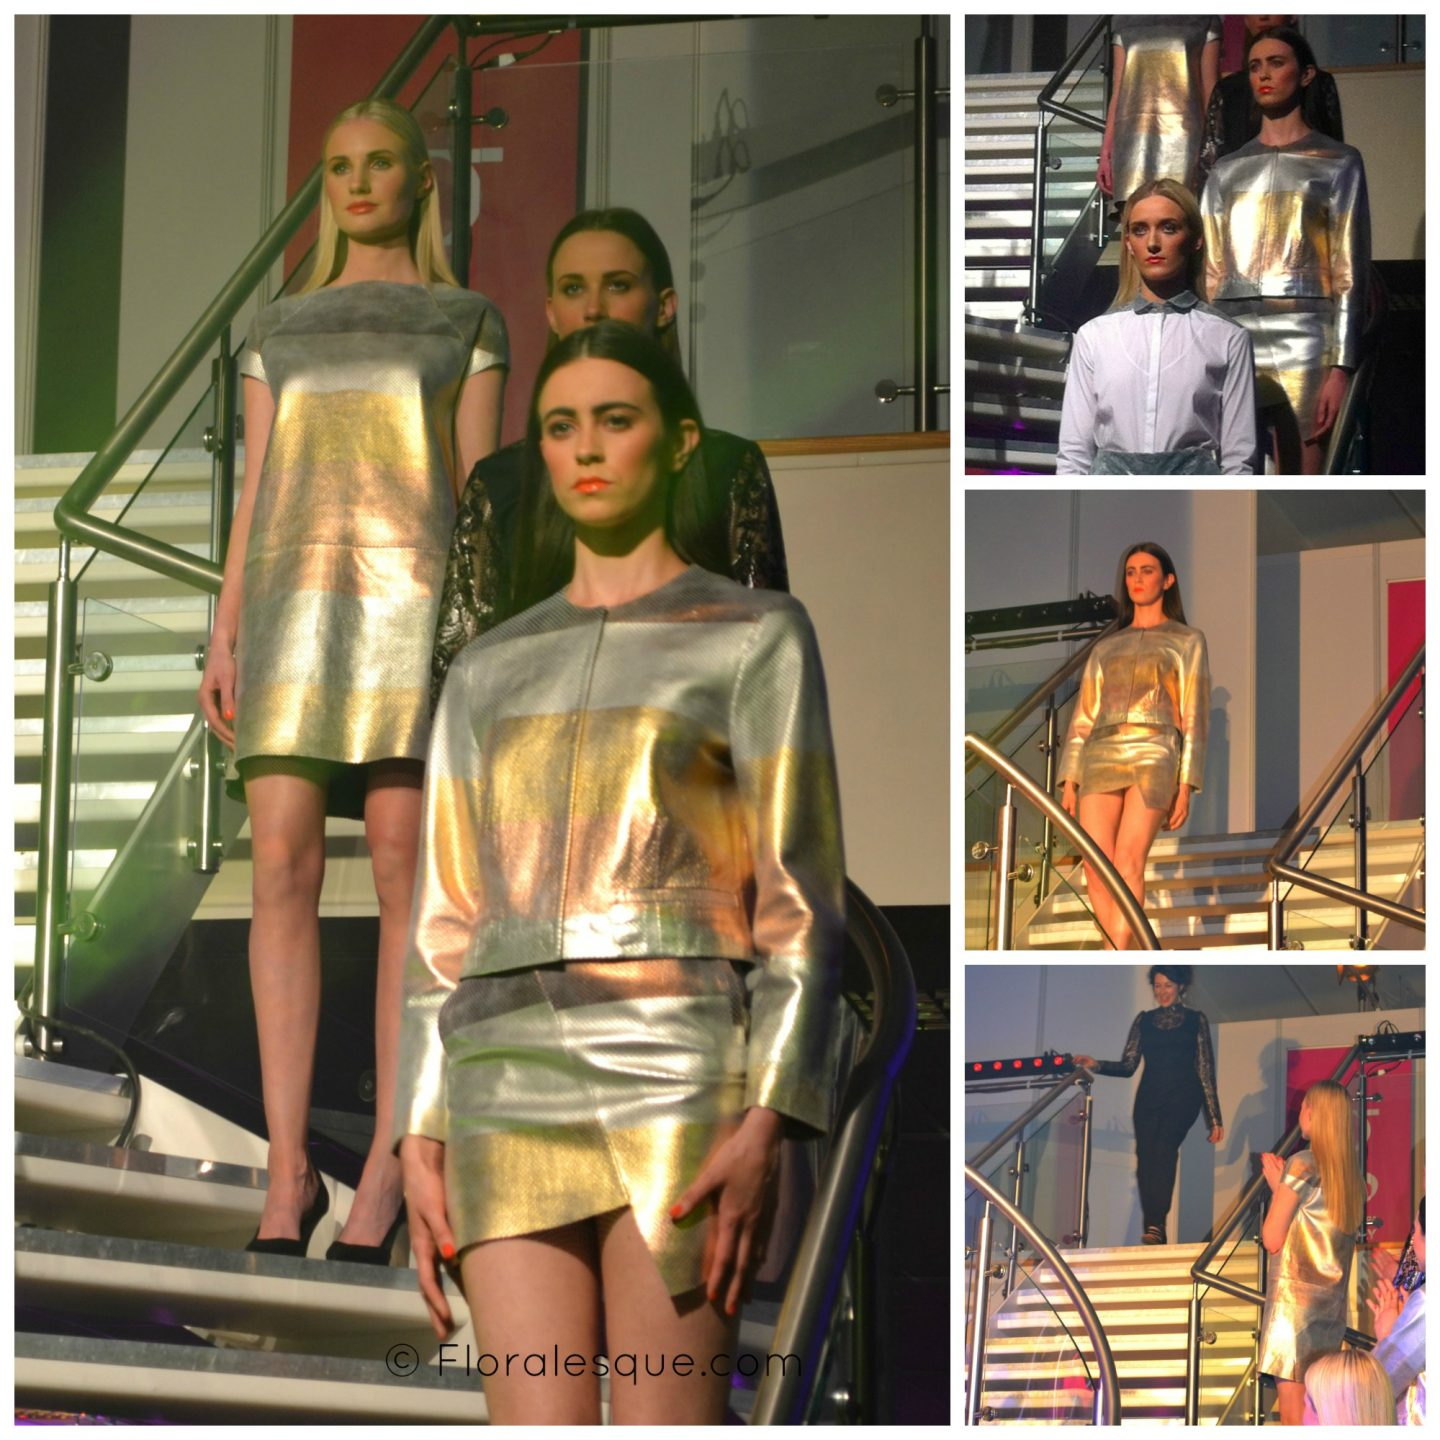 The Natalie B Coleman A/W 2014 Collection